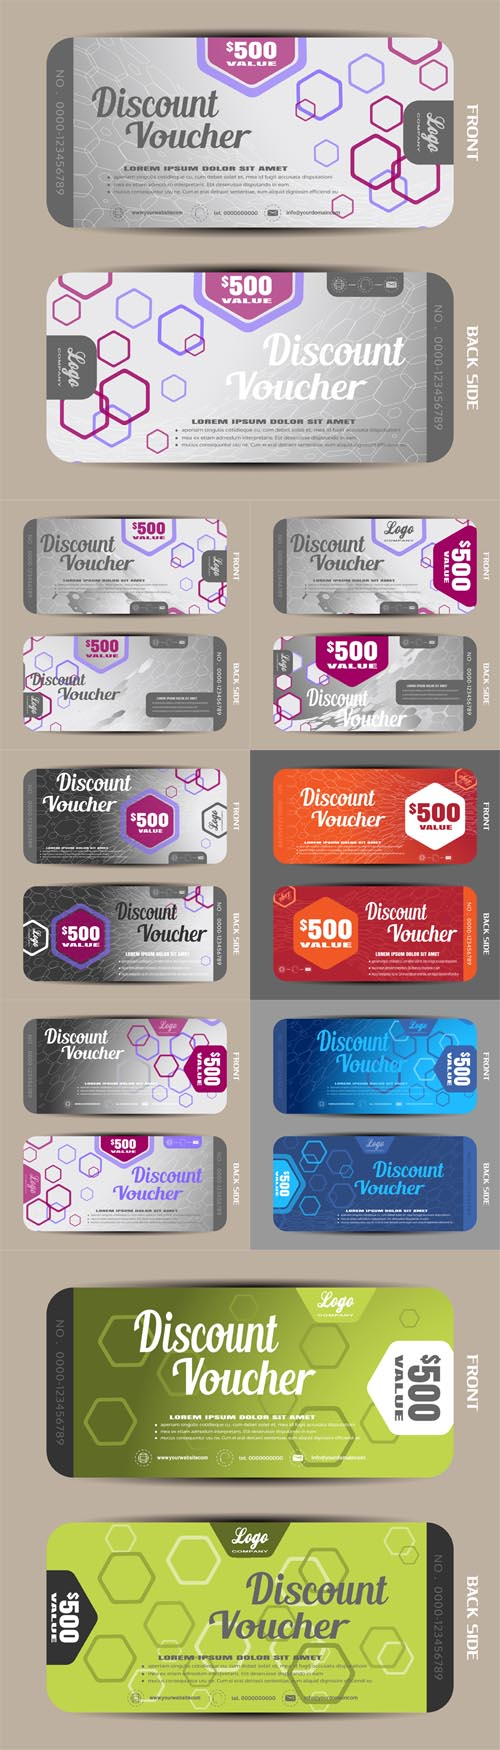 Vector Voucher Illustrations on the Gradient Background and Hexagon Pattern